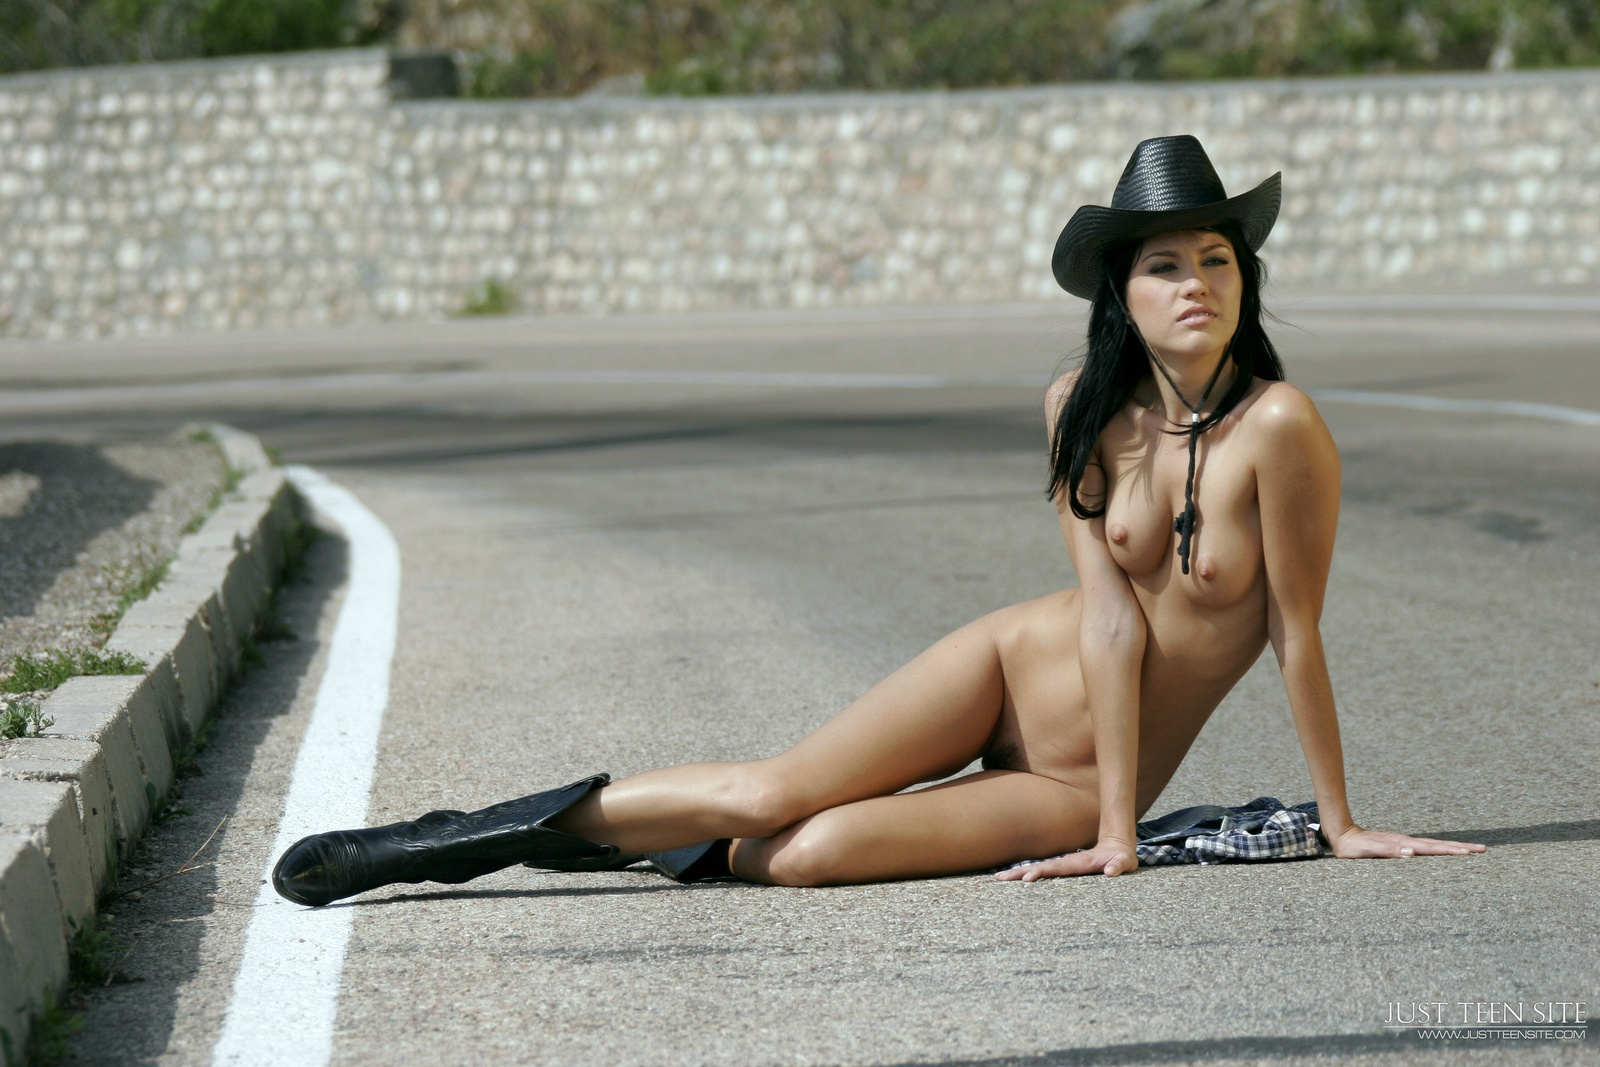 Image fap nude girls with cowboy hat babe wallpapers